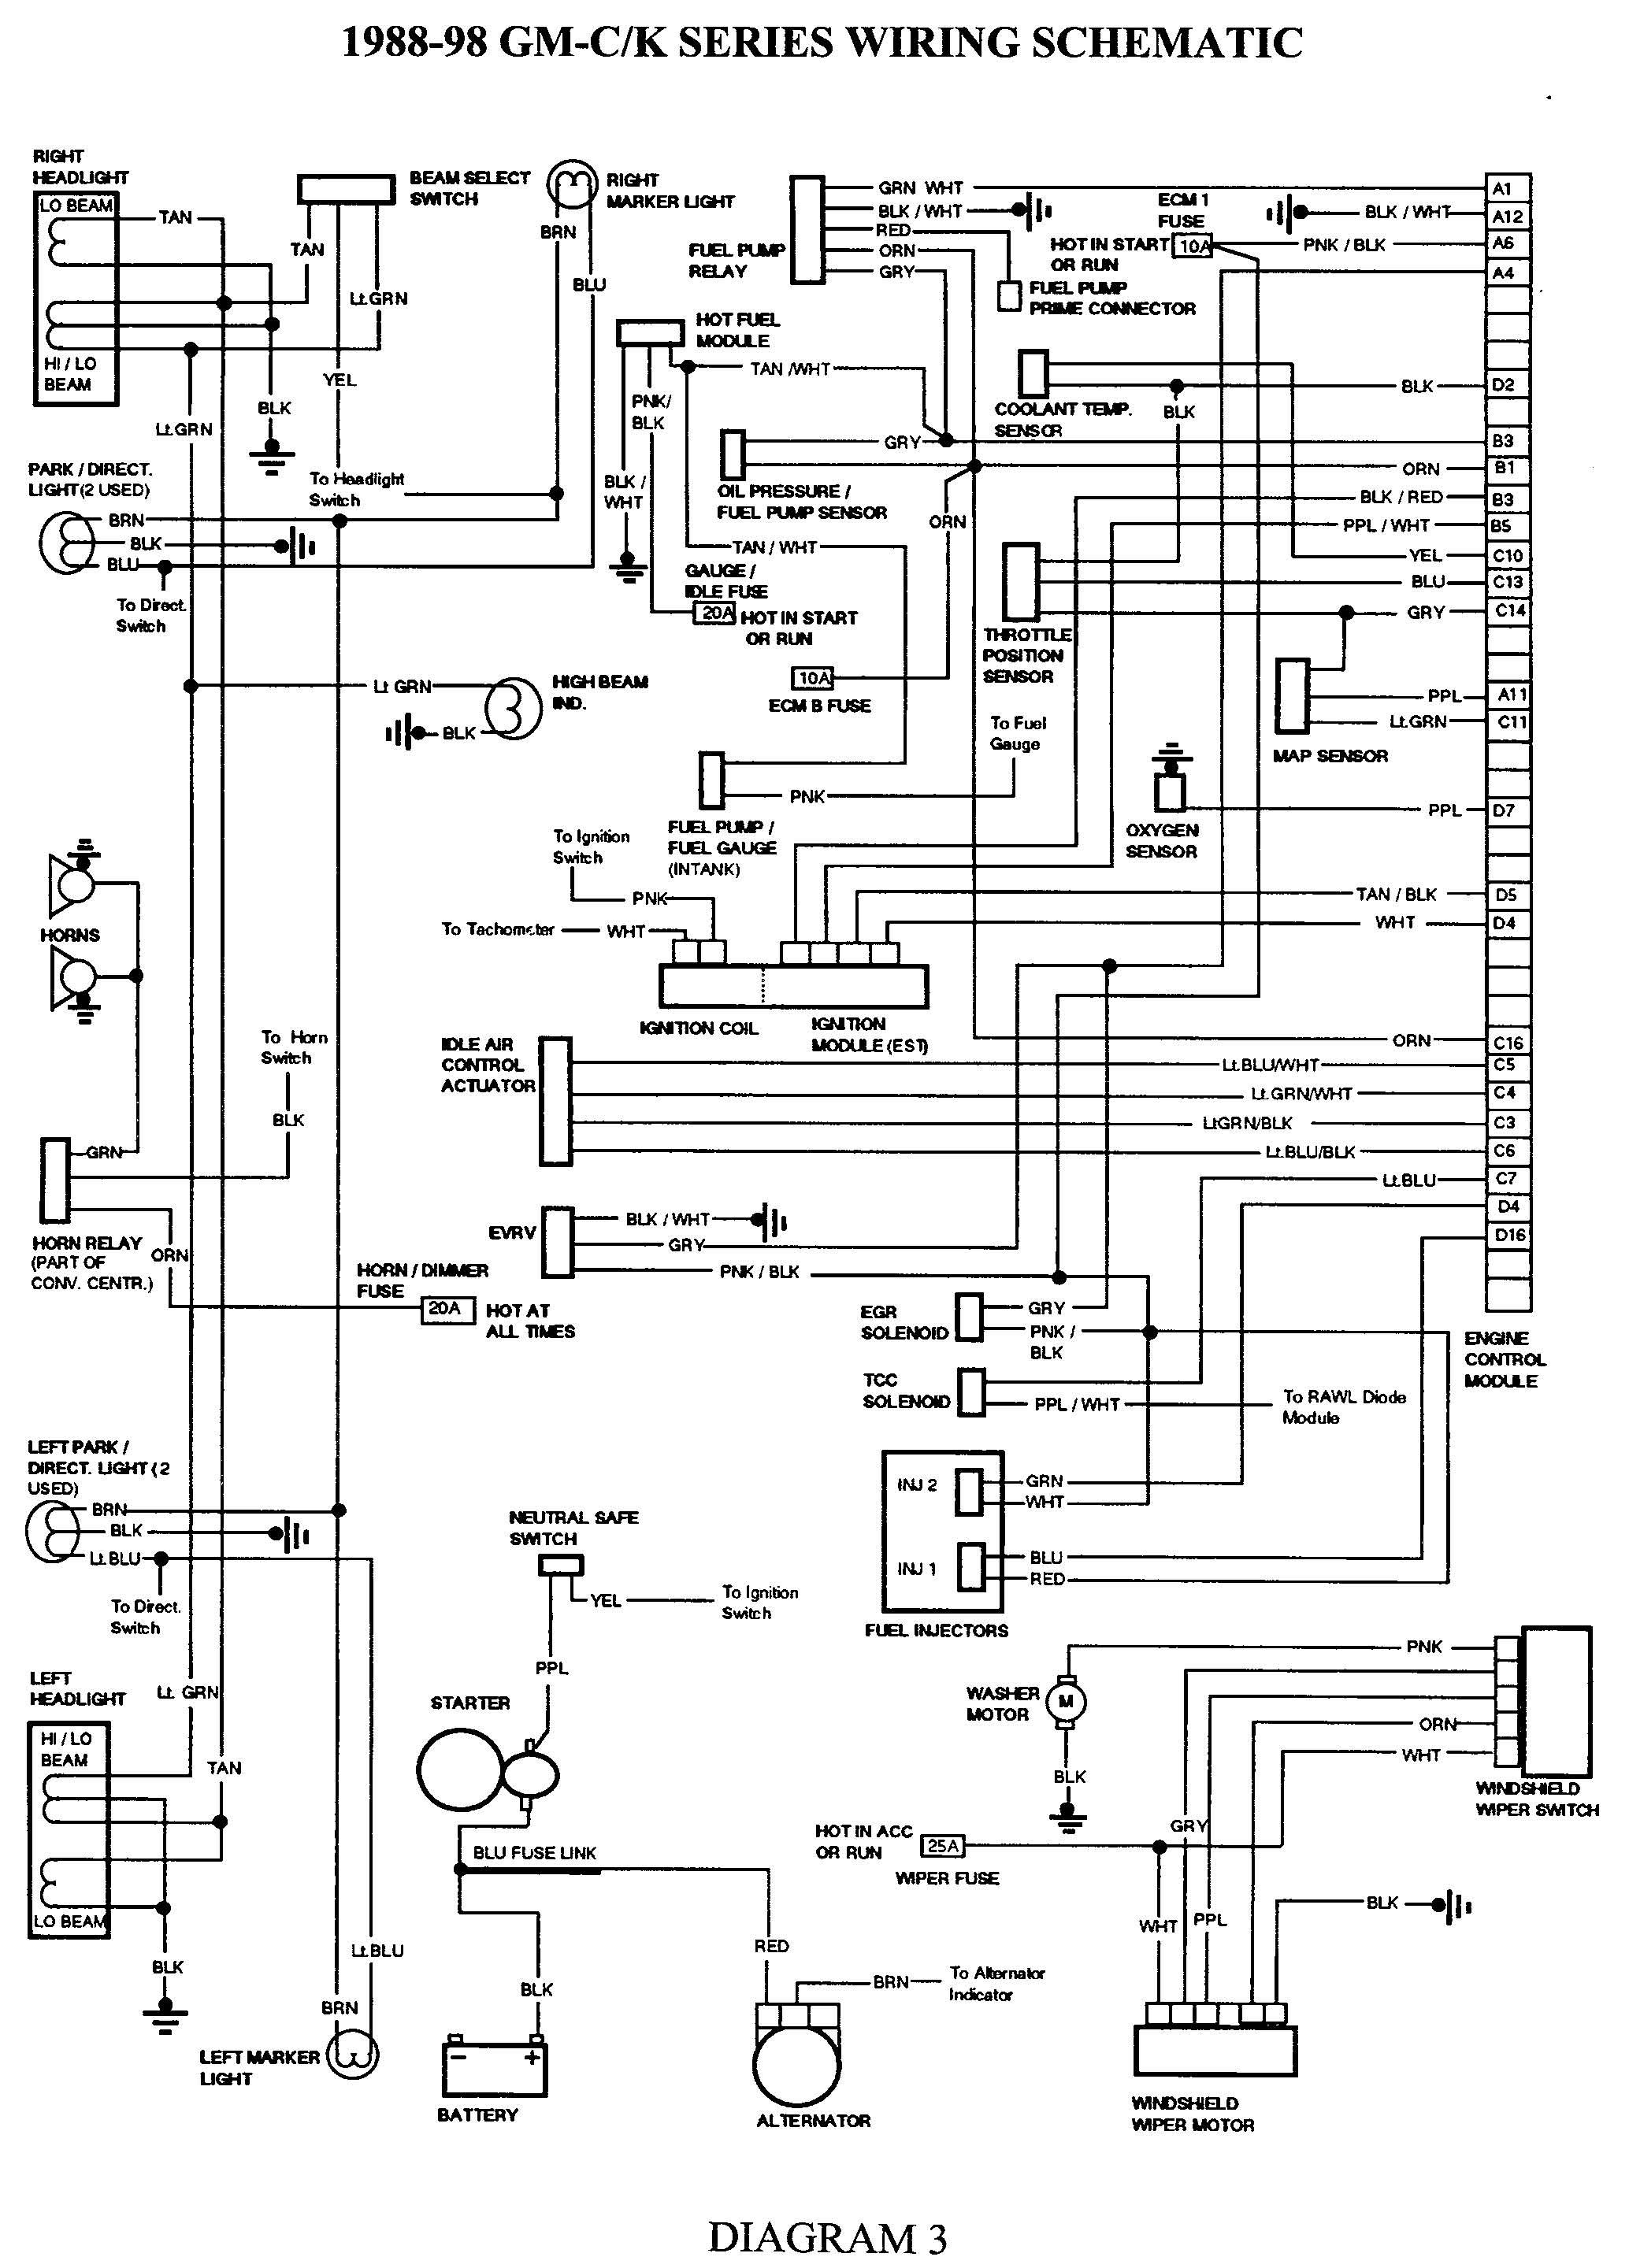 Gmc Truck Wiring Diagrams On Gm Wiring Harness Diagram 88 98 | Kc - 5.7 Vortec Engine Wiring Diagram